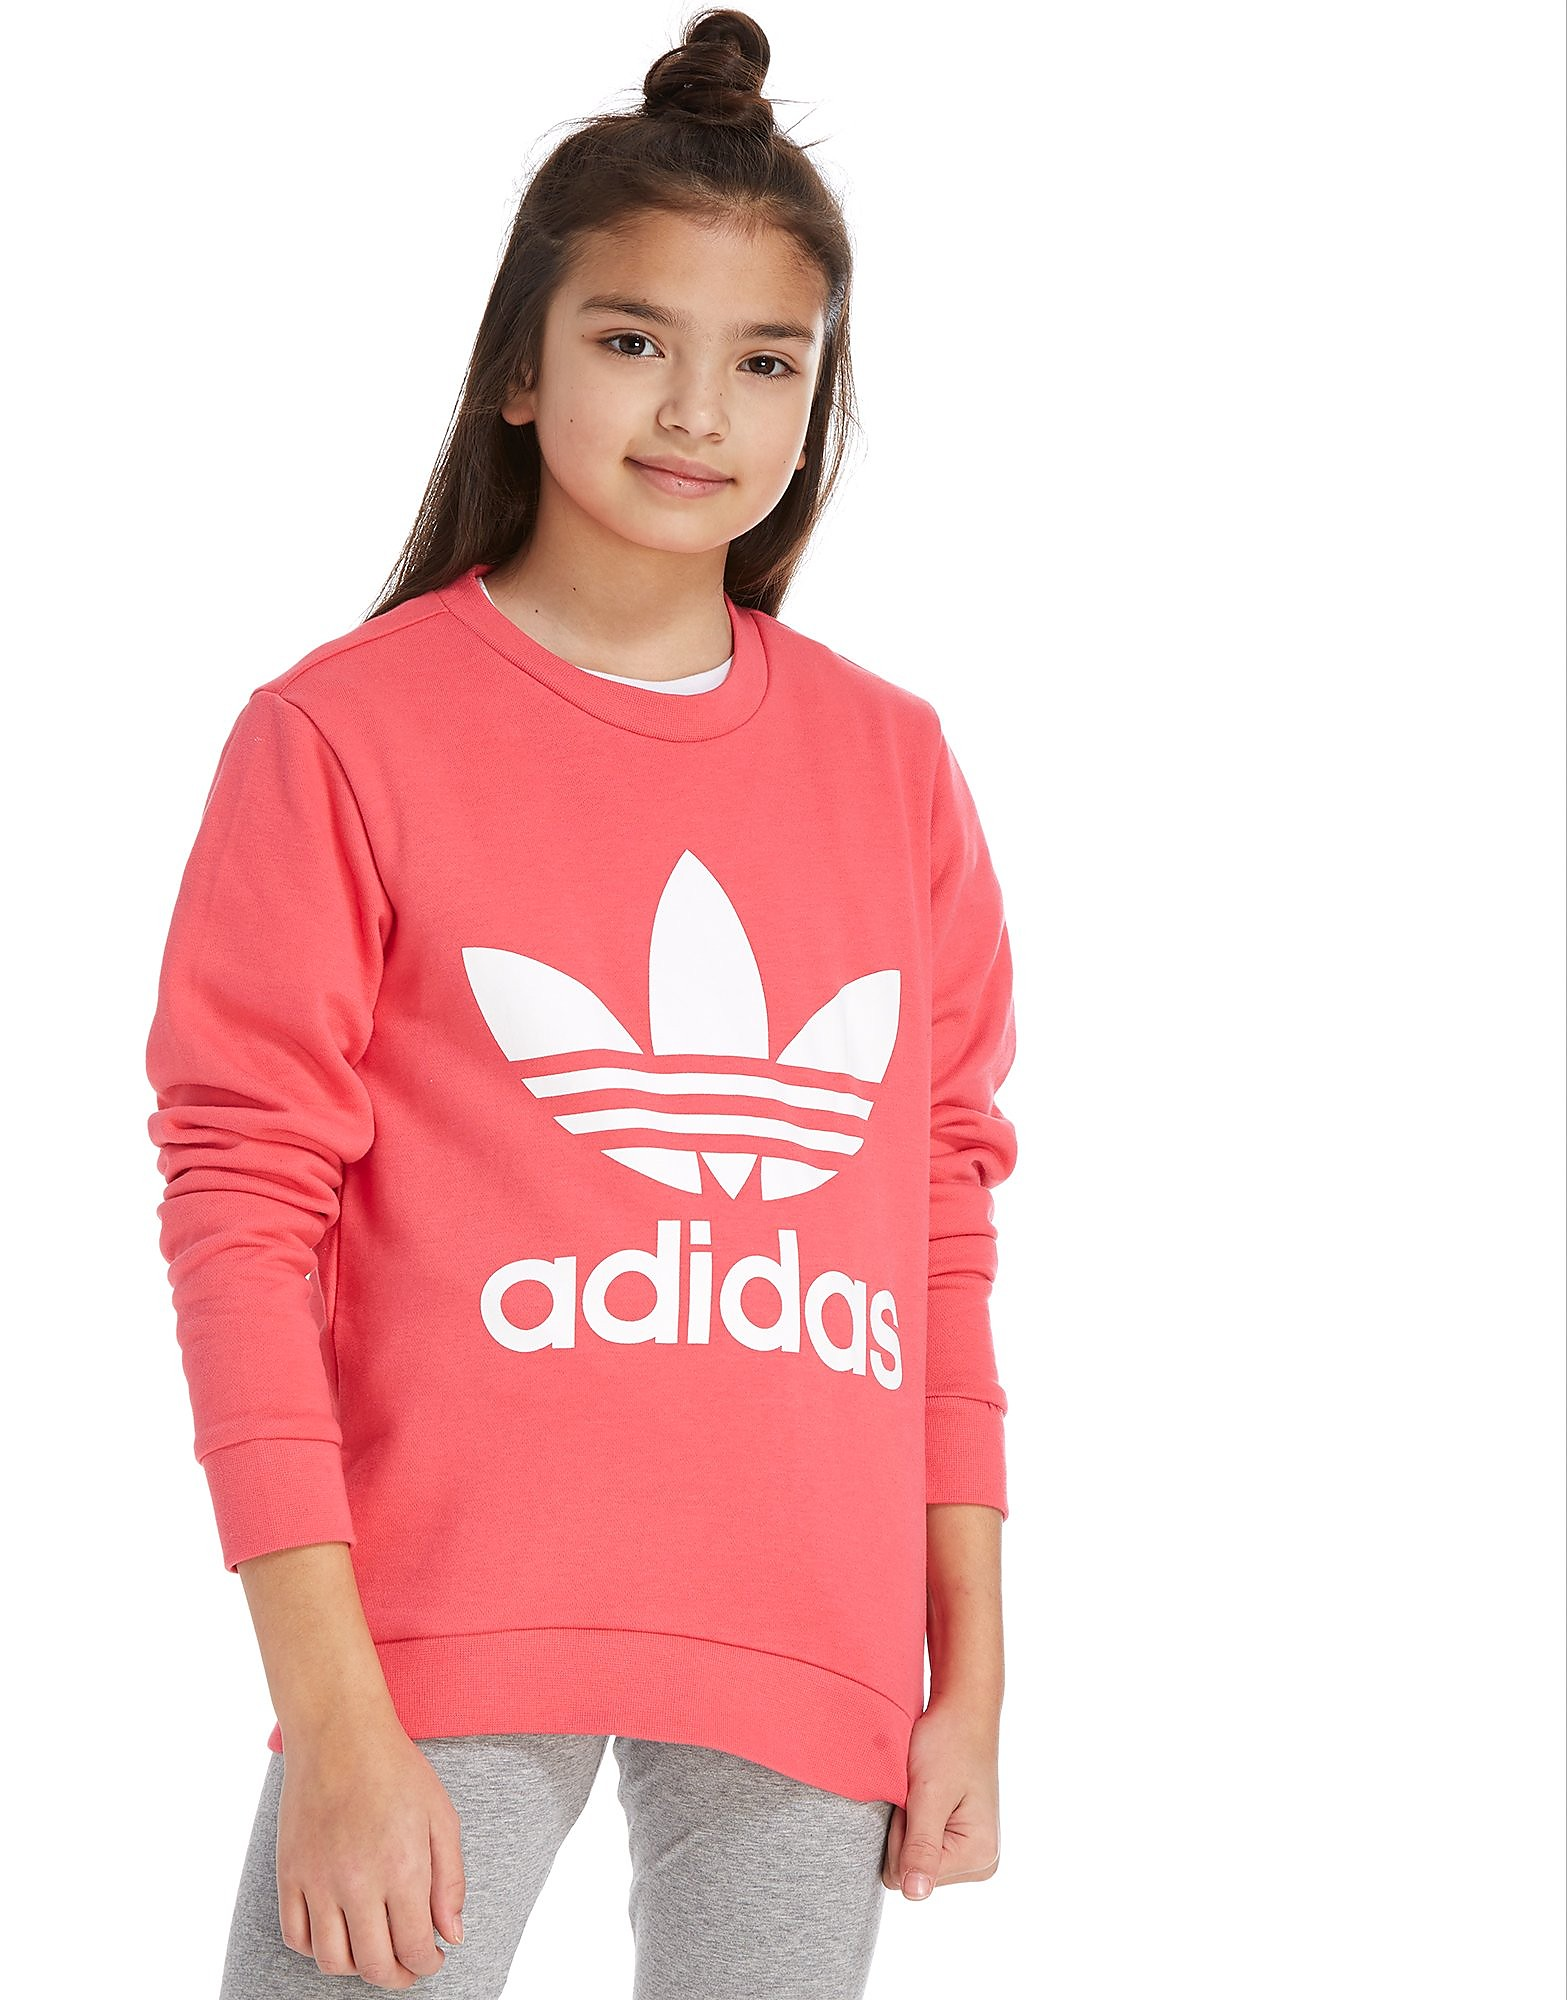 adidas Originals Girls' Crew Sweatshirt Junior